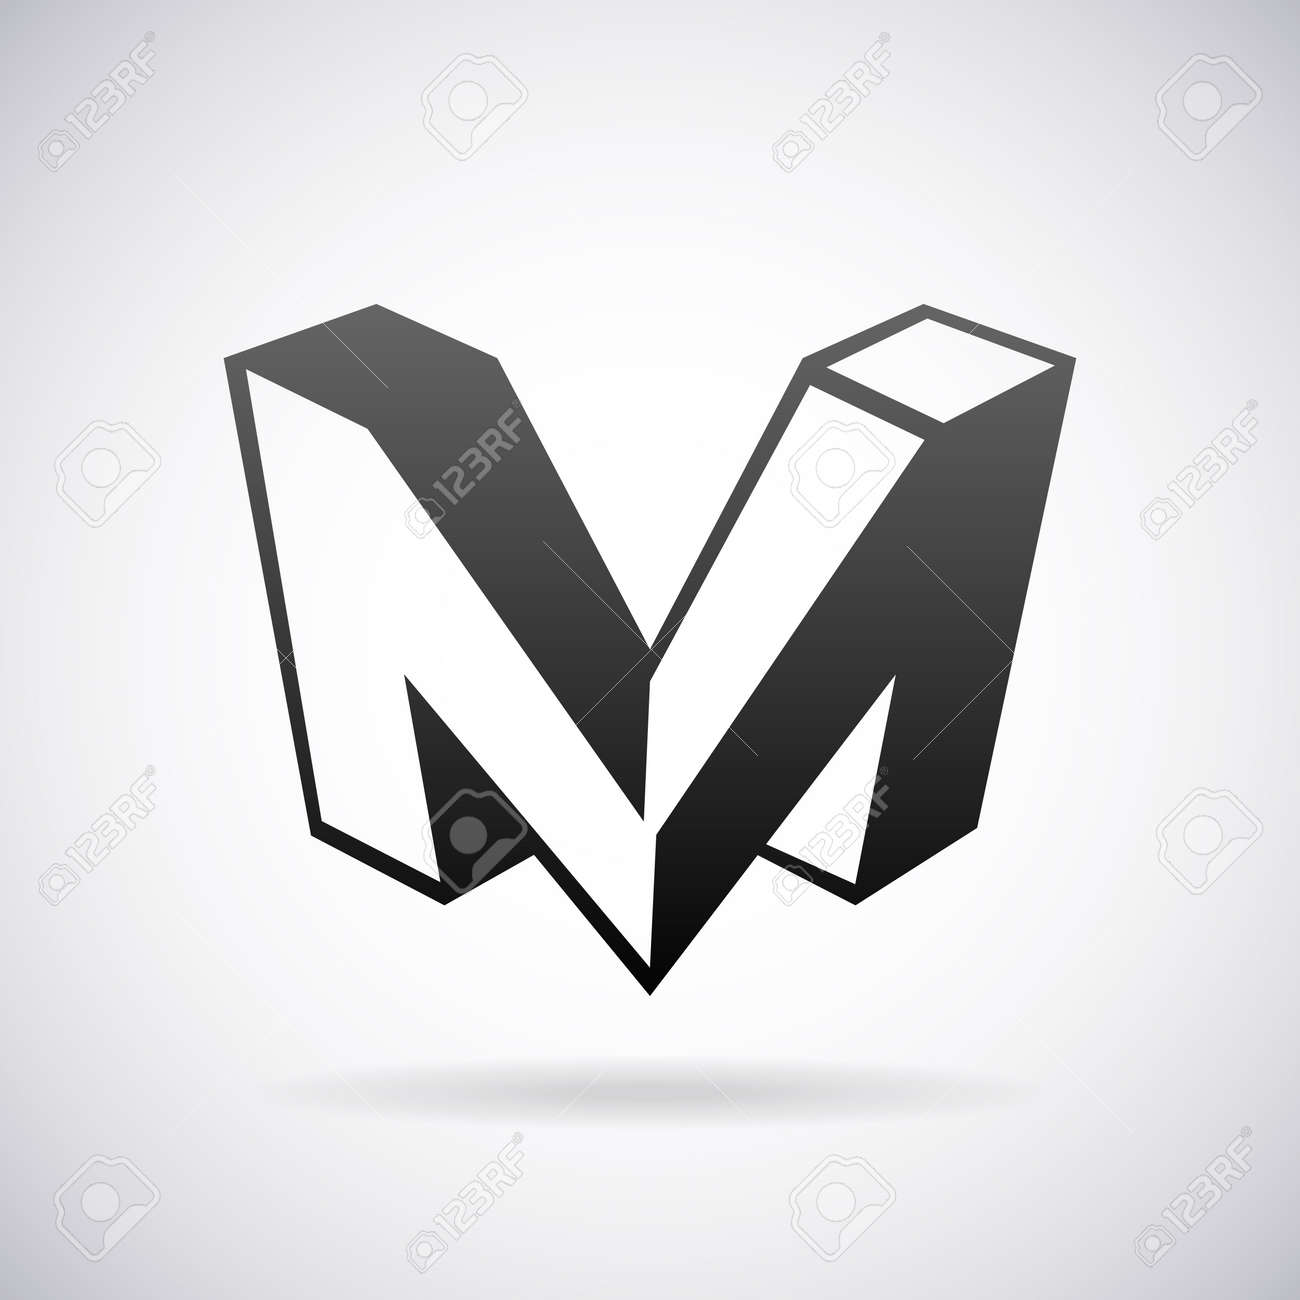 Logo for letter m design template vector illustration royalty free logo for letter m design template vector illustration stock vector 41721929 thecheapjerseys Image collections